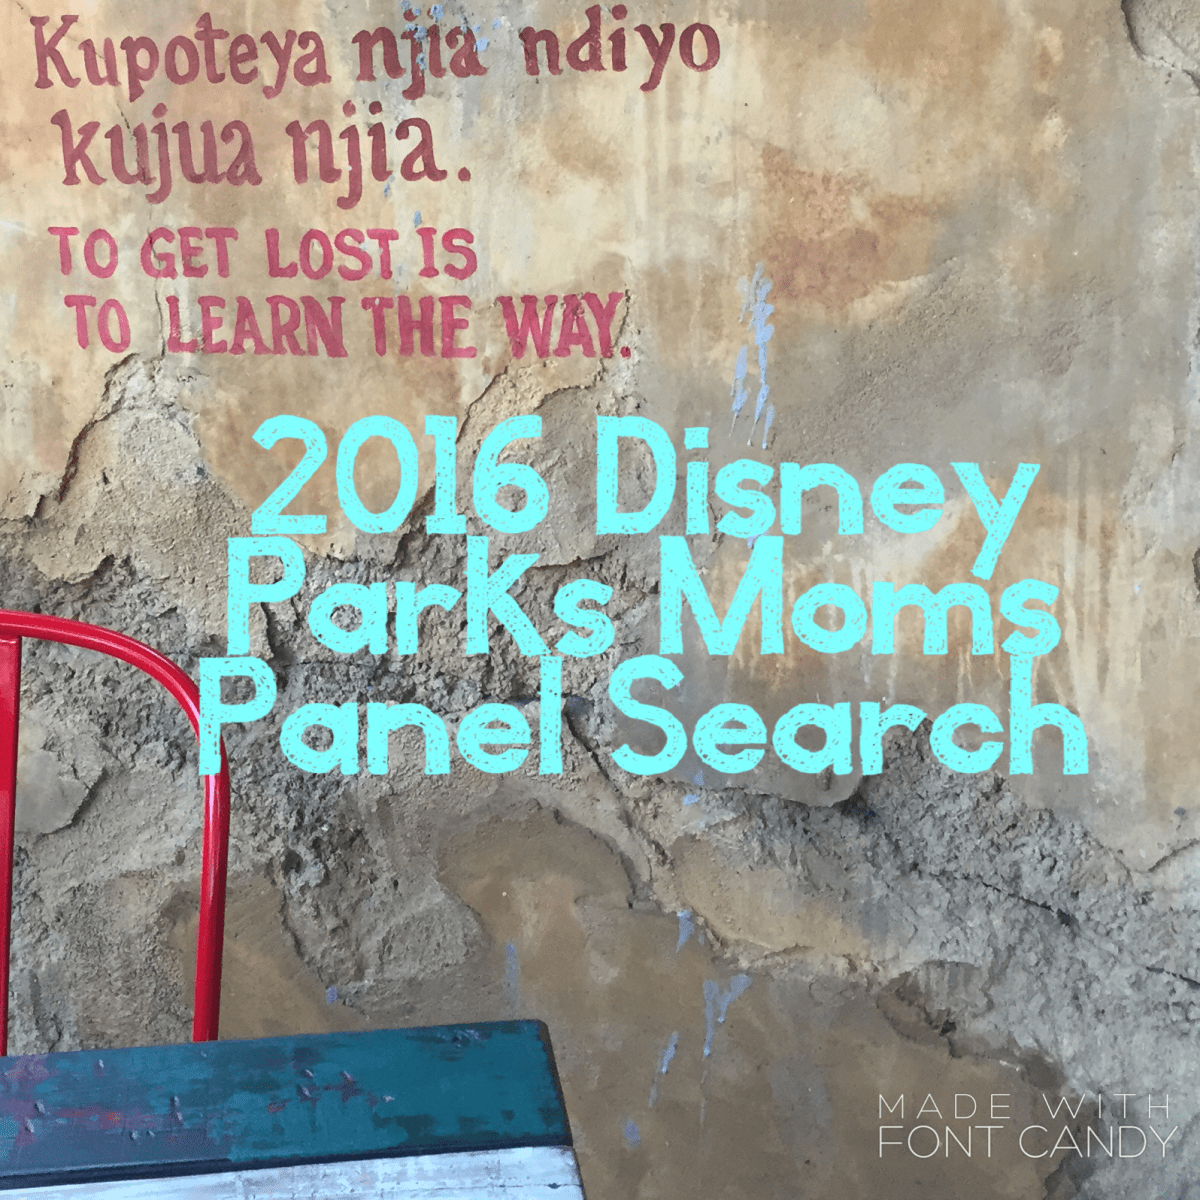 2016 Disney Parks Moms Panel Search - Third Time's the Charm